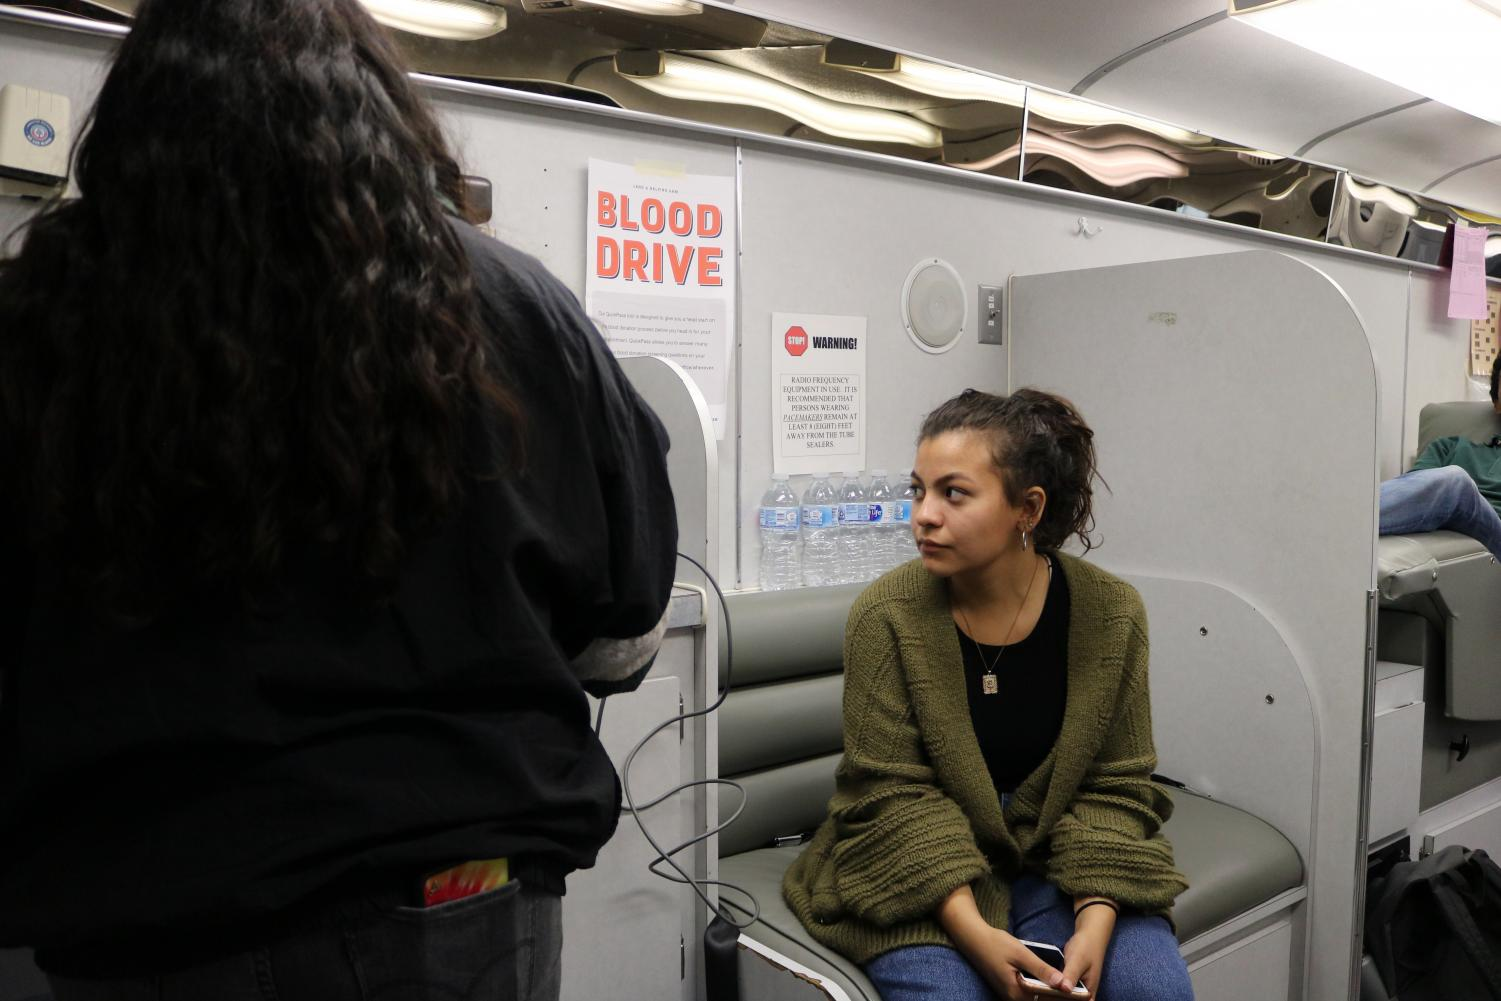 Heather+Lobera+%2720+patiently+waits+for+a+blood+drive+helper+to+ask+her+questions+before+she+can+donate+blood.